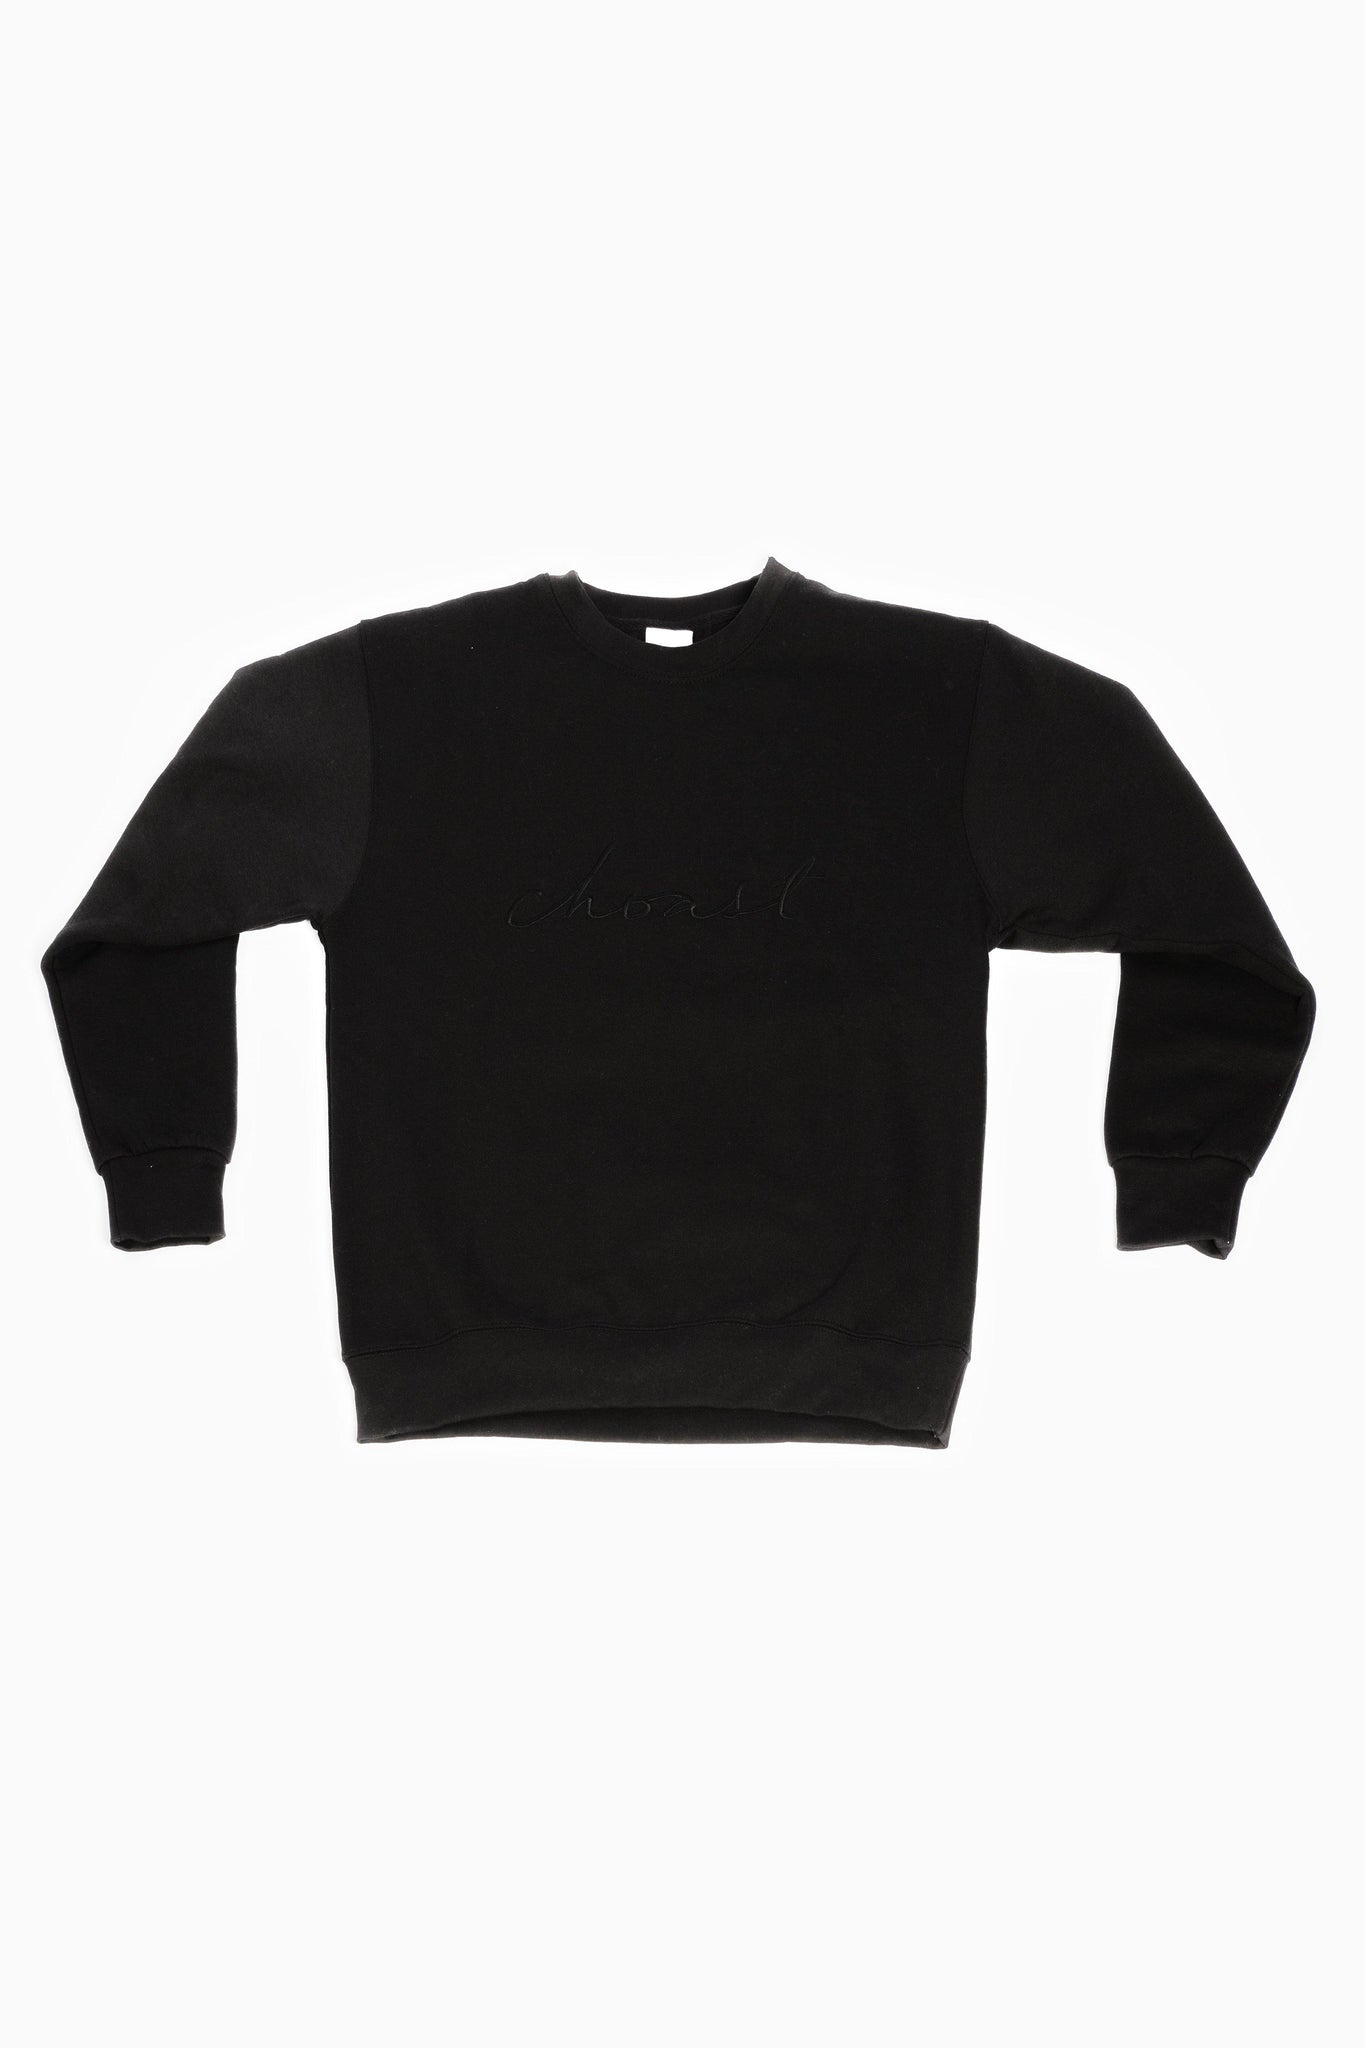 BLACK CREWNECK - Choast